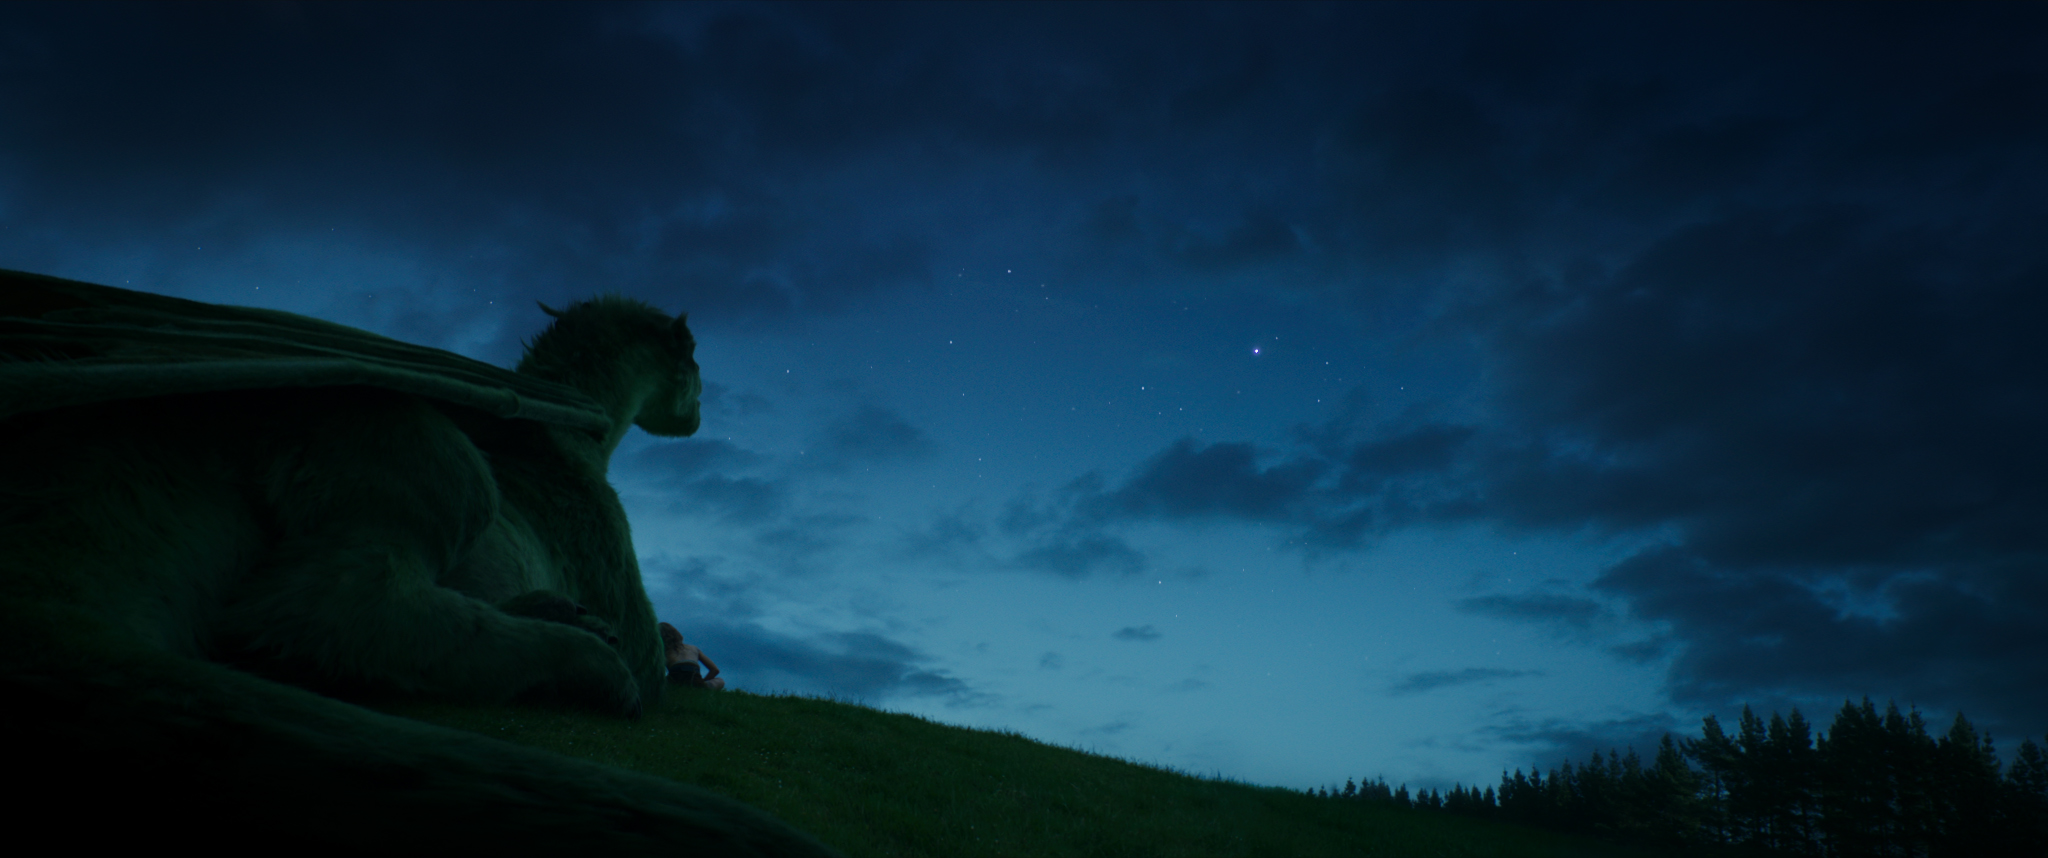 #petesdragon disney